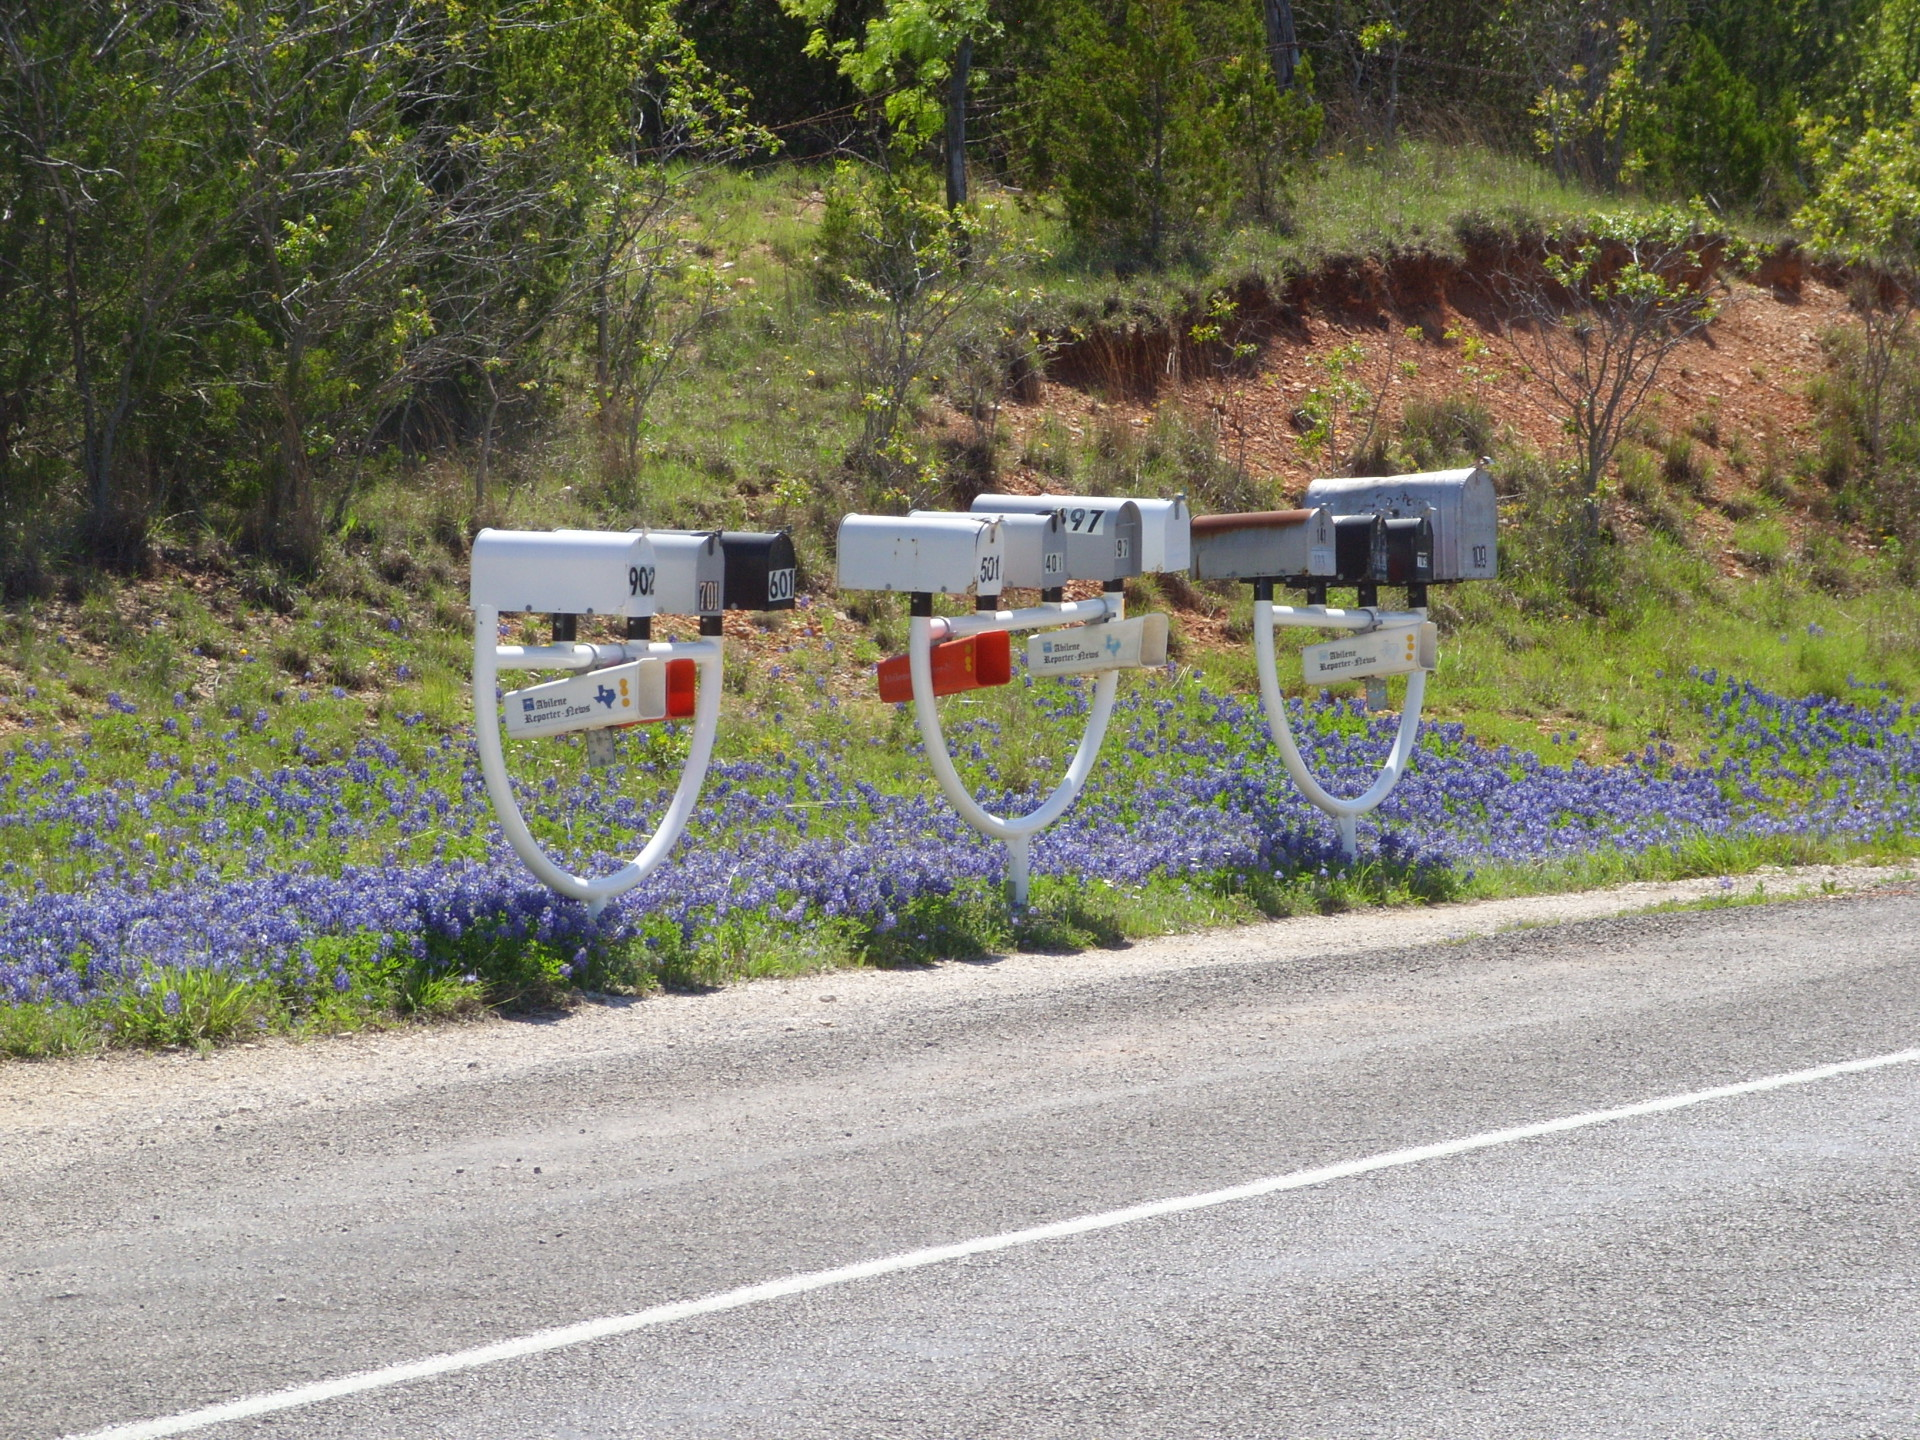 Bluebonnets and Mailboxes